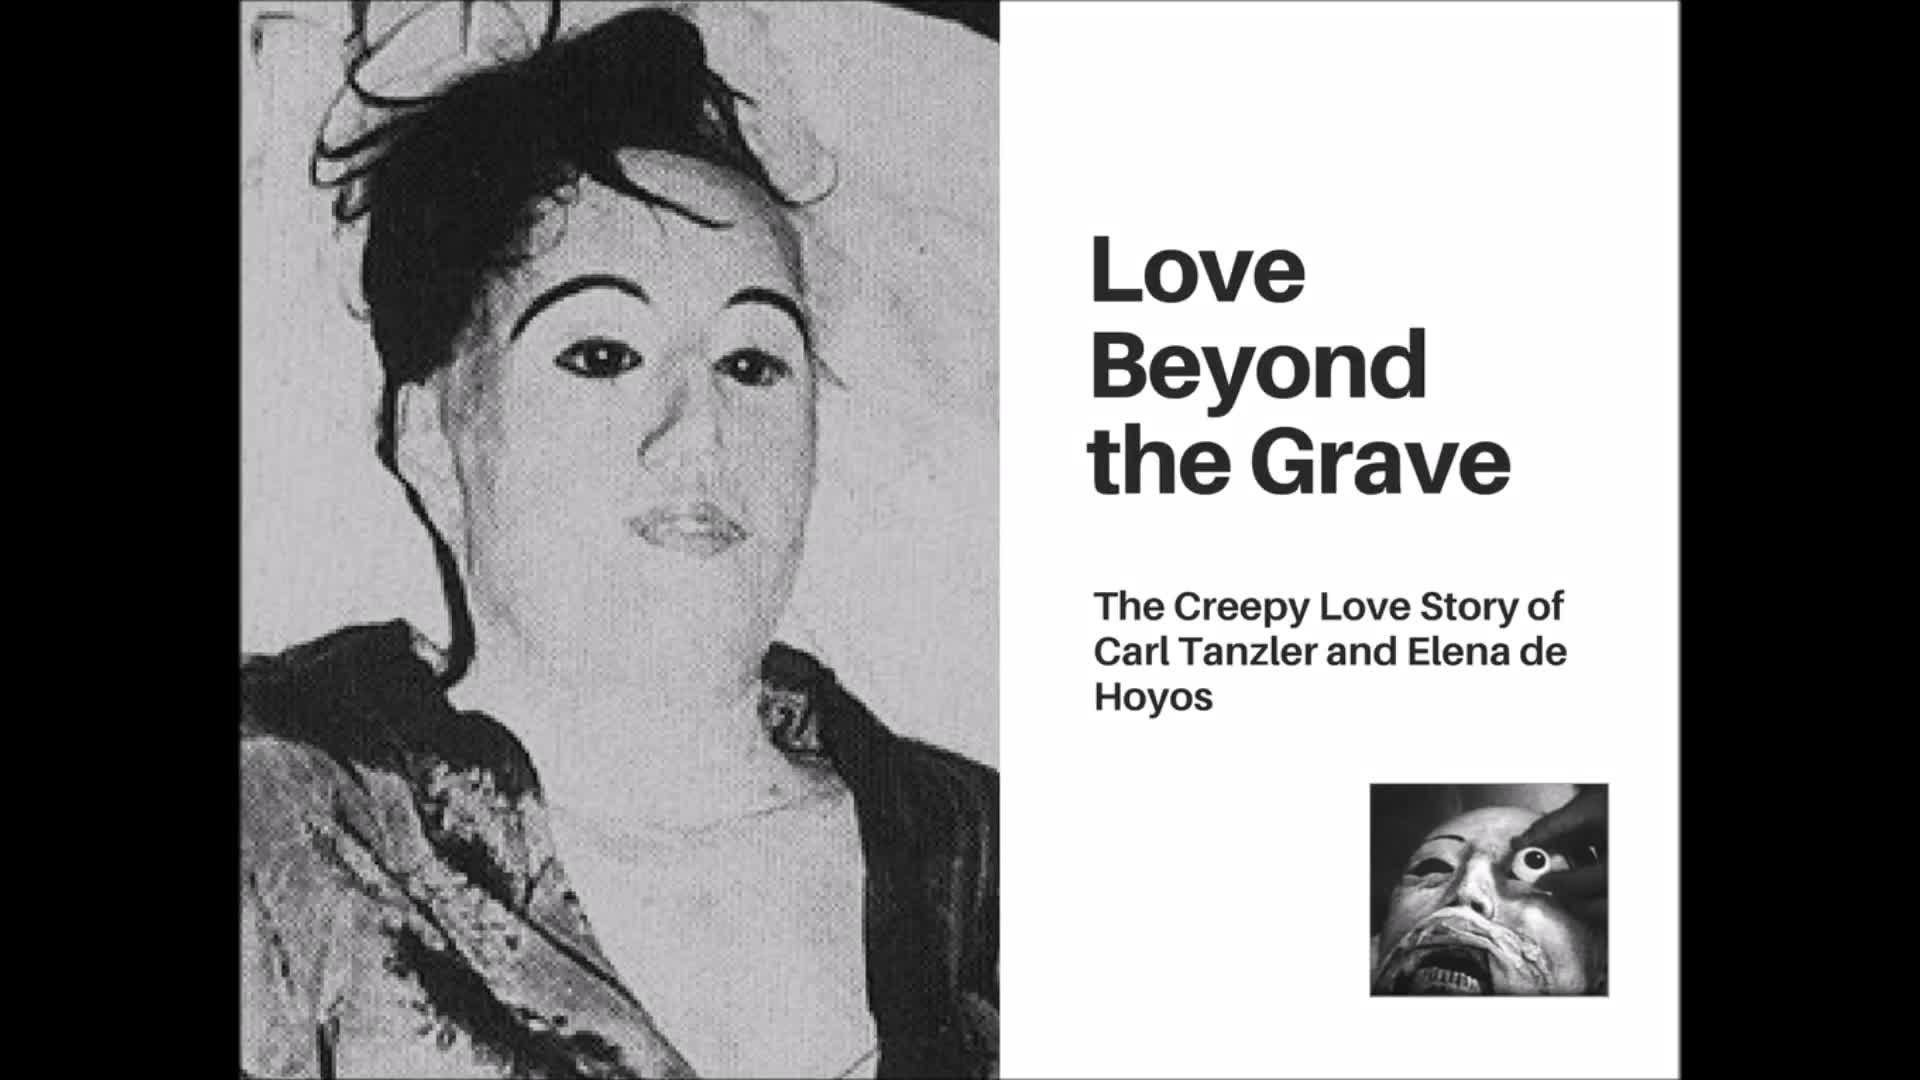 Love and Necrophilia: The True (and Creepy) Story of jew (((Carl Tanzler))) and Elena de Hoyos